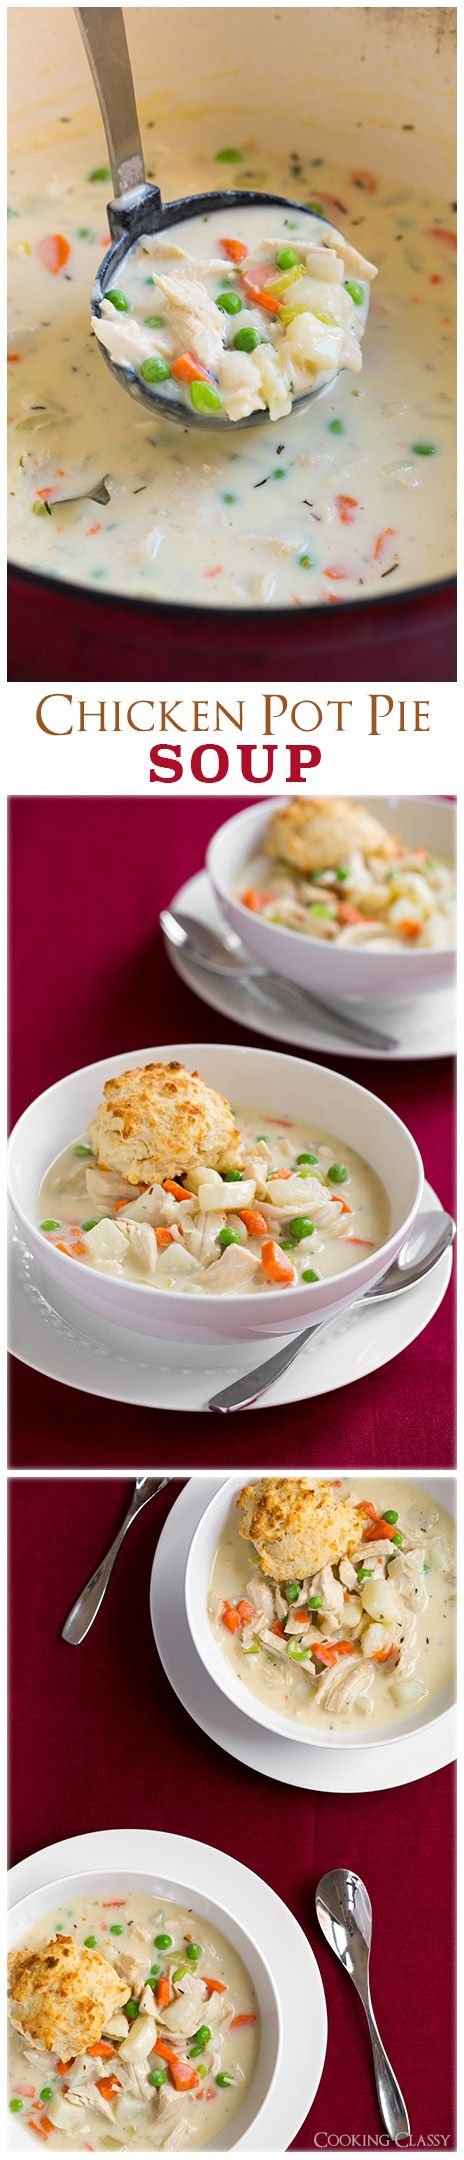 Chicken Pot Pie Soup with Easy Parmesan Drop Biscuits - this soup is ...